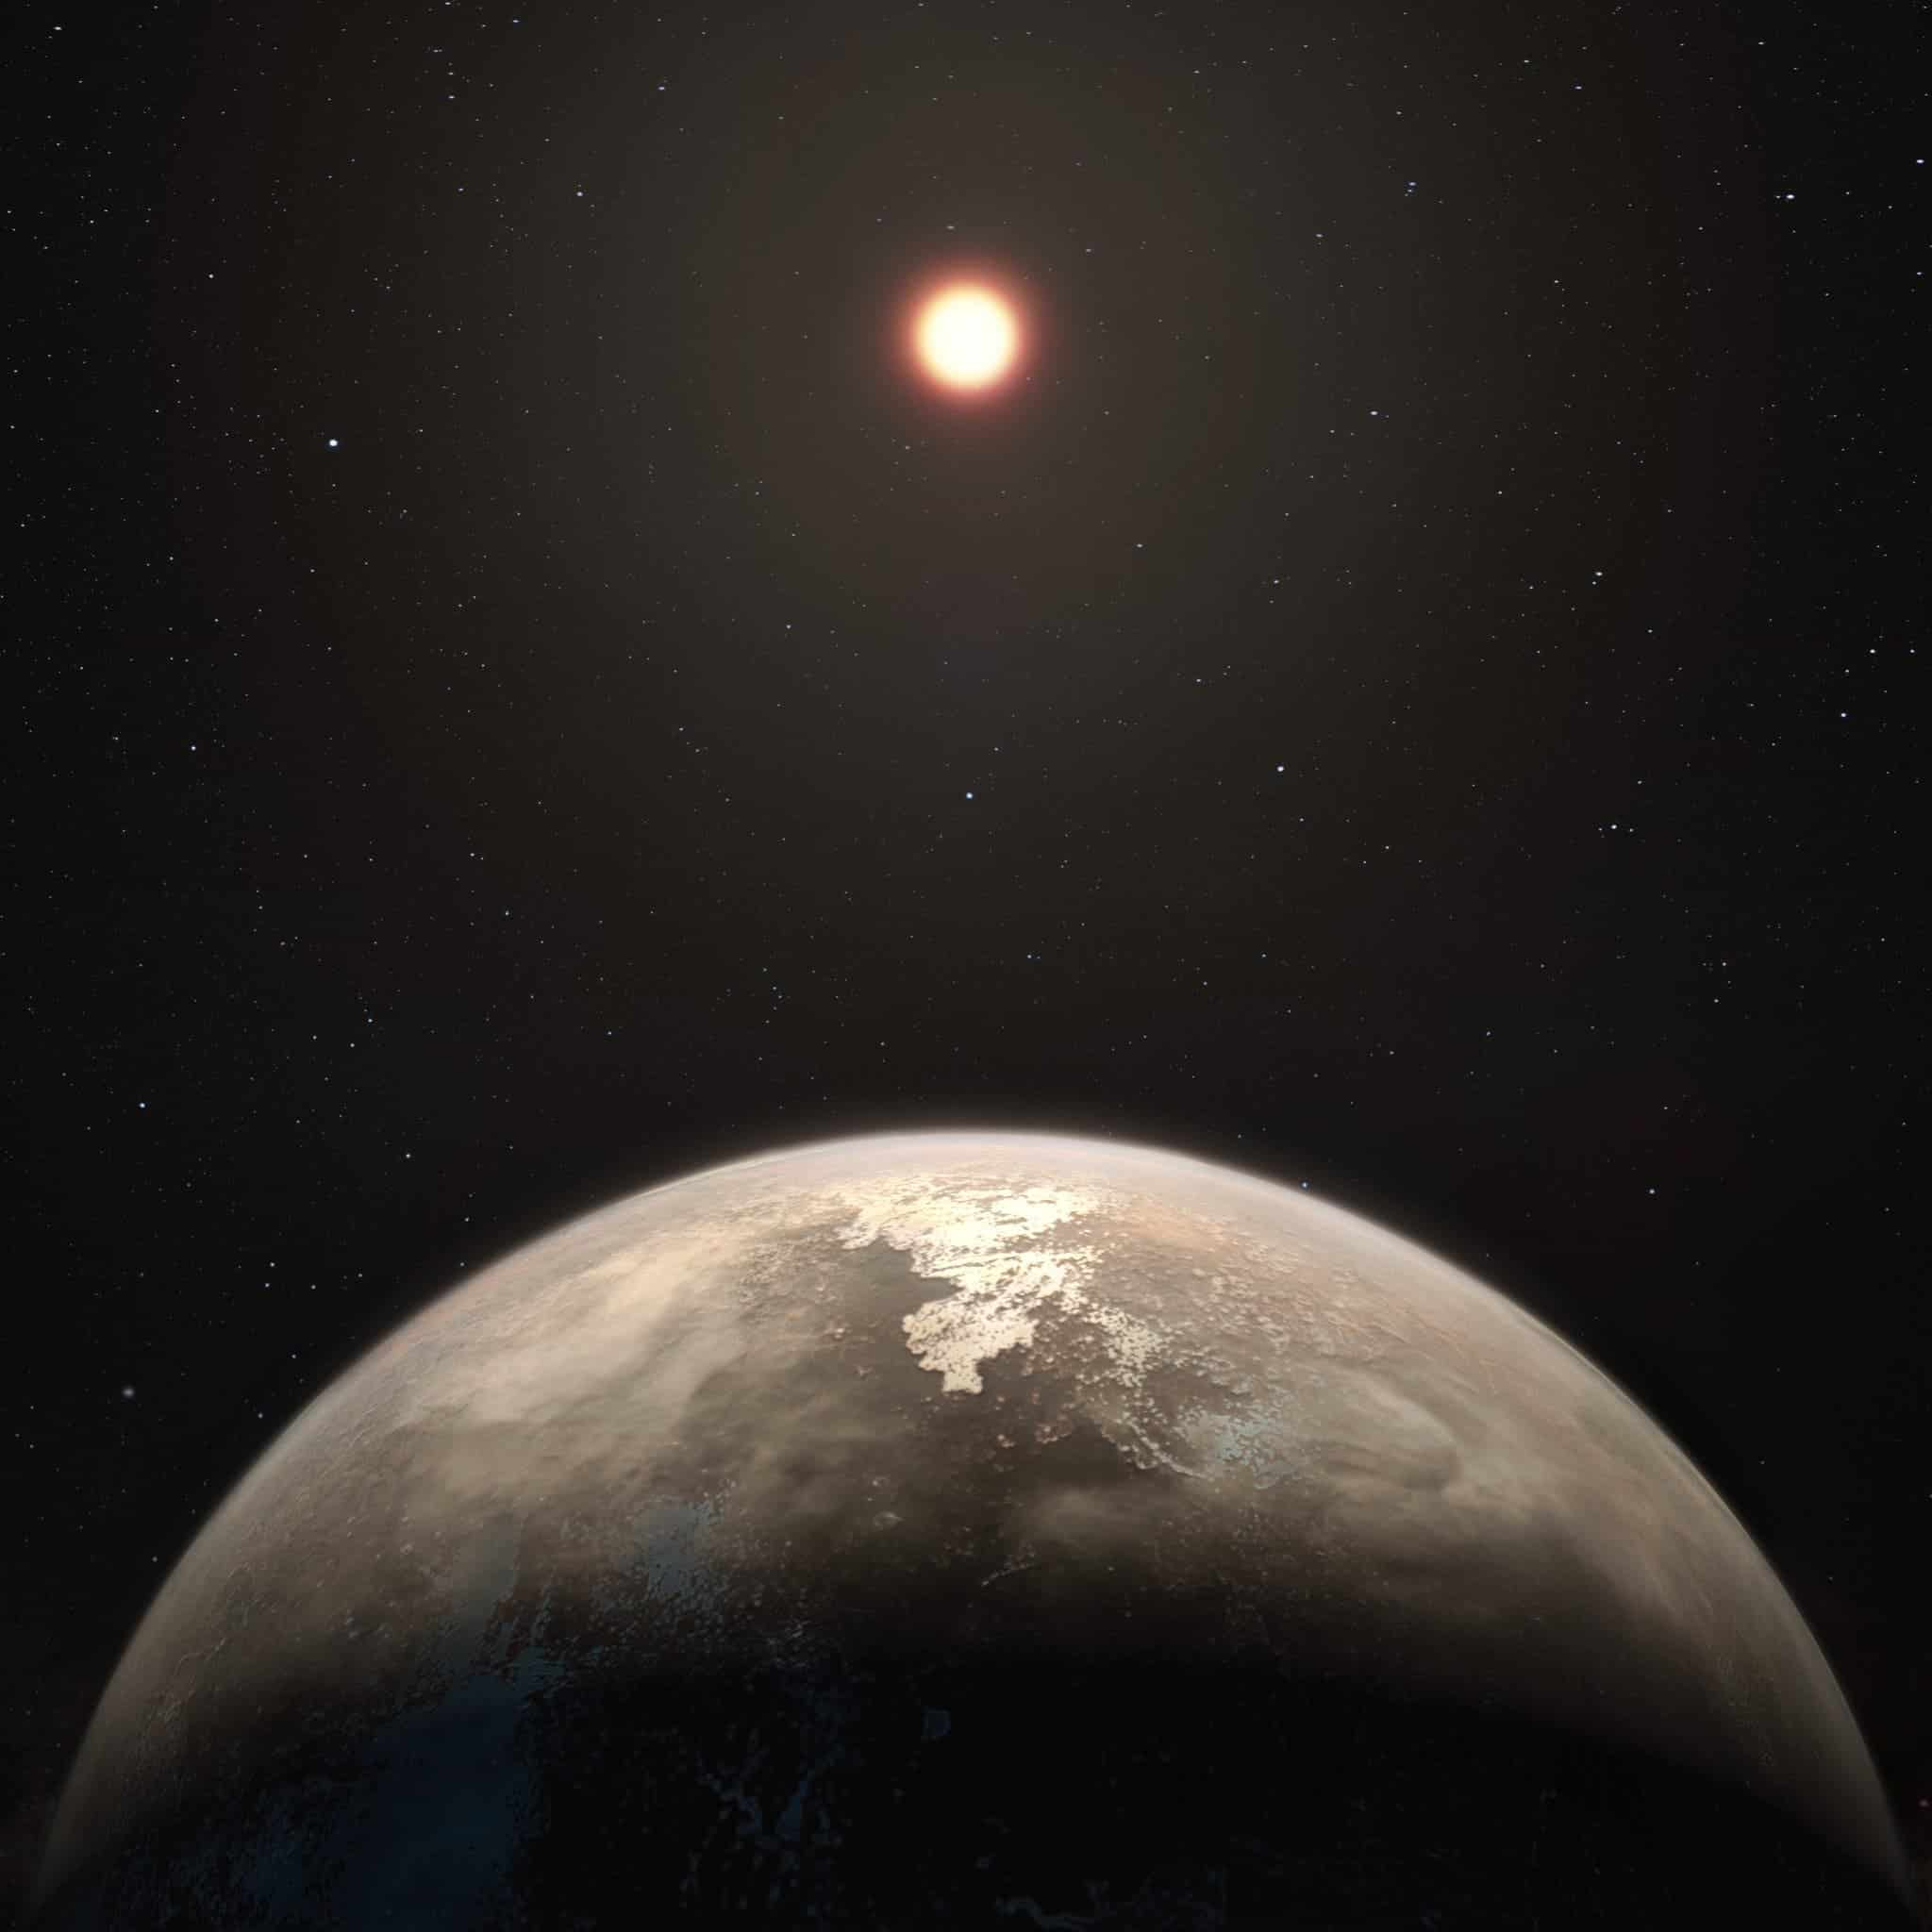 Scientists spotted Earth-like planet, potentially capable of harboring life